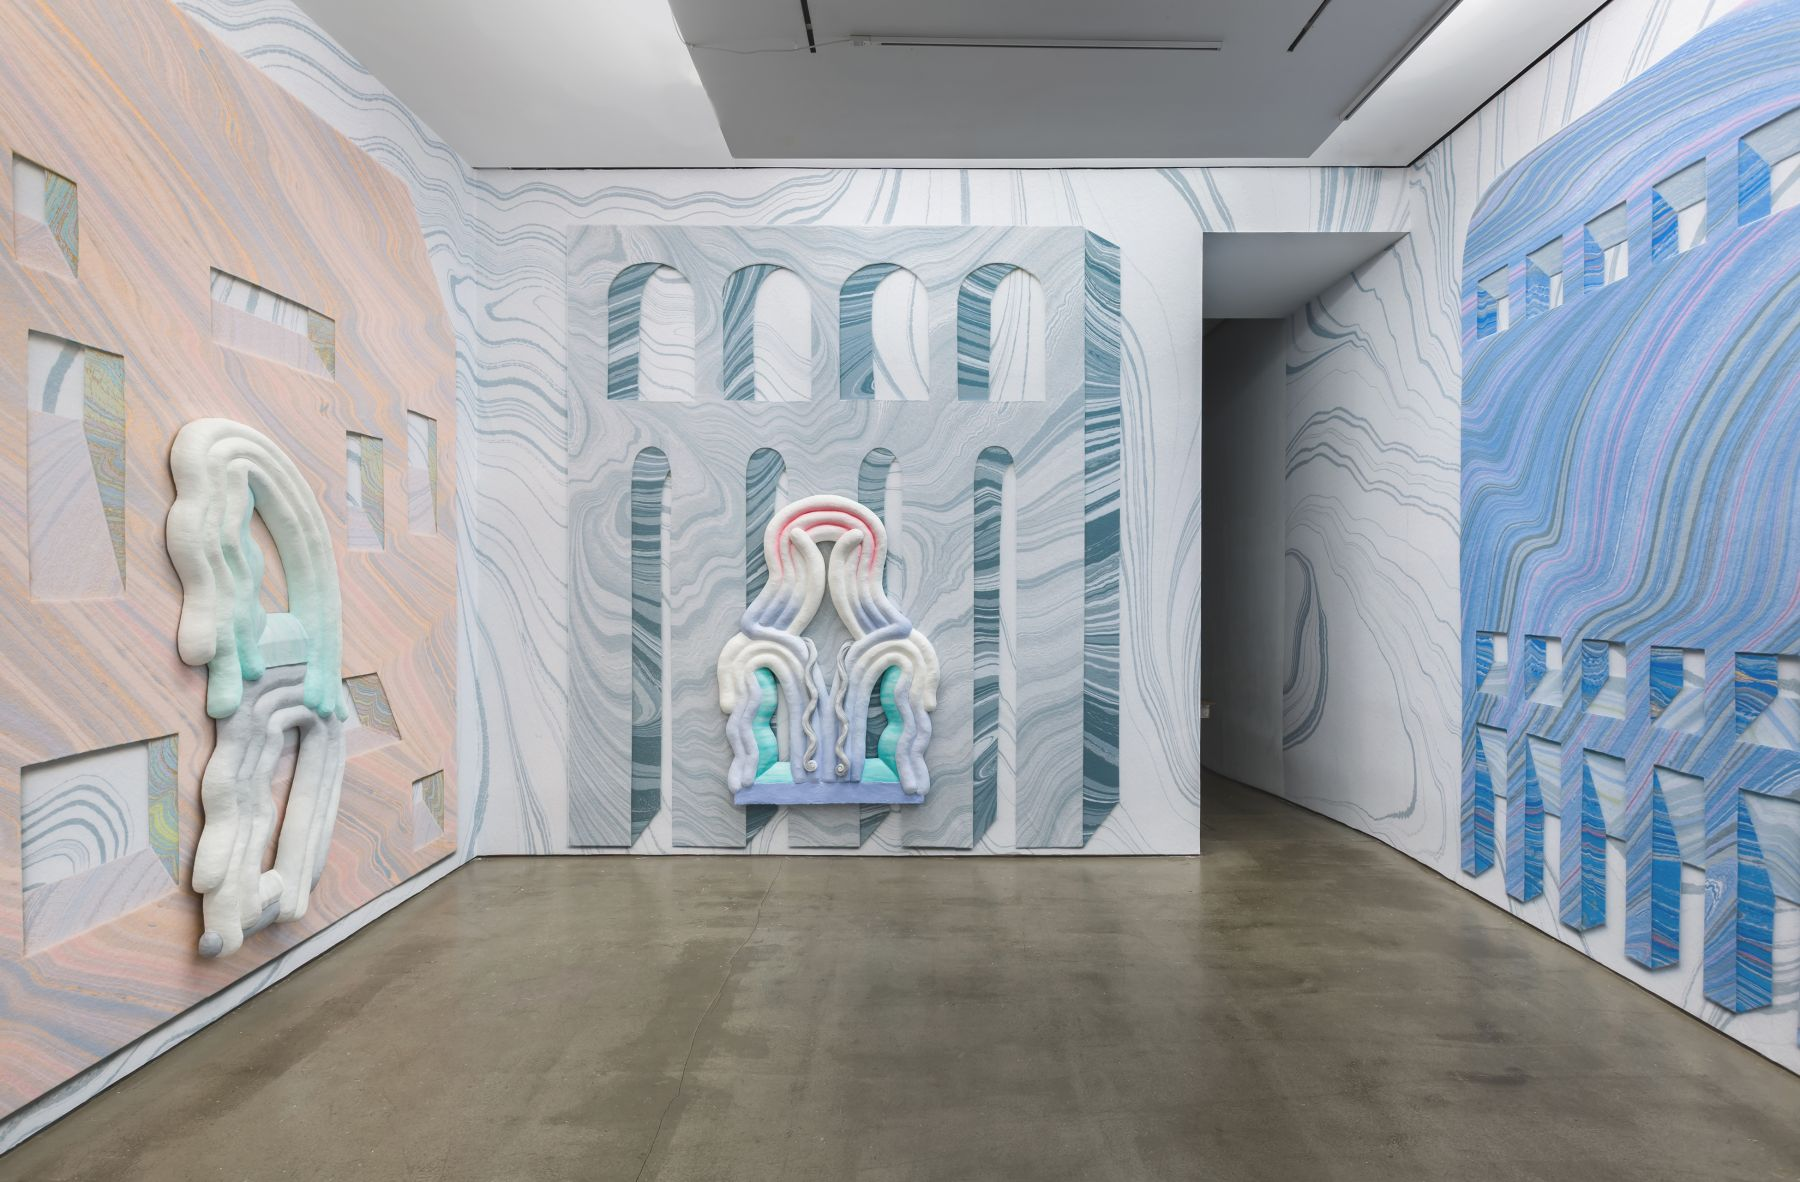 Installation view from Lauren Clay's solo exhibition. Large sculptural pieces hang on the wall. The wall is papered with custom-made wallpaper.